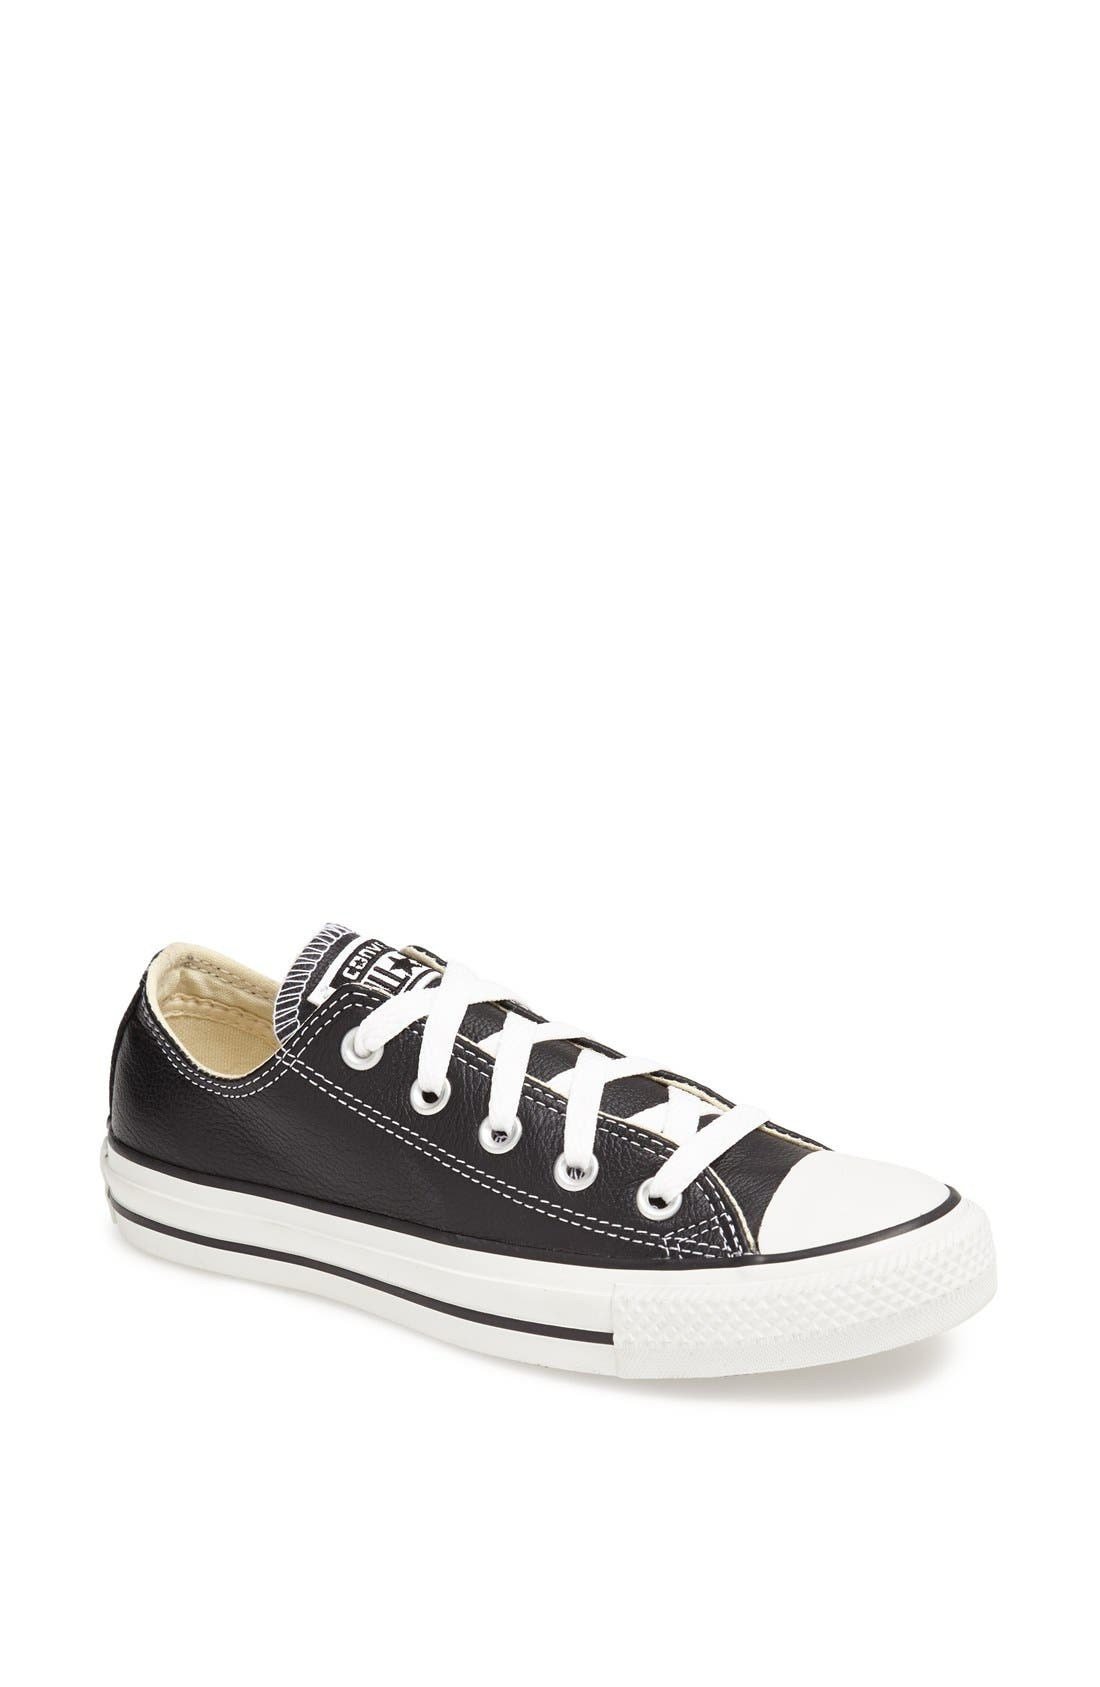 Main Image - Converse Chuck Taylor® All Star® Leather Sneaker (Women)